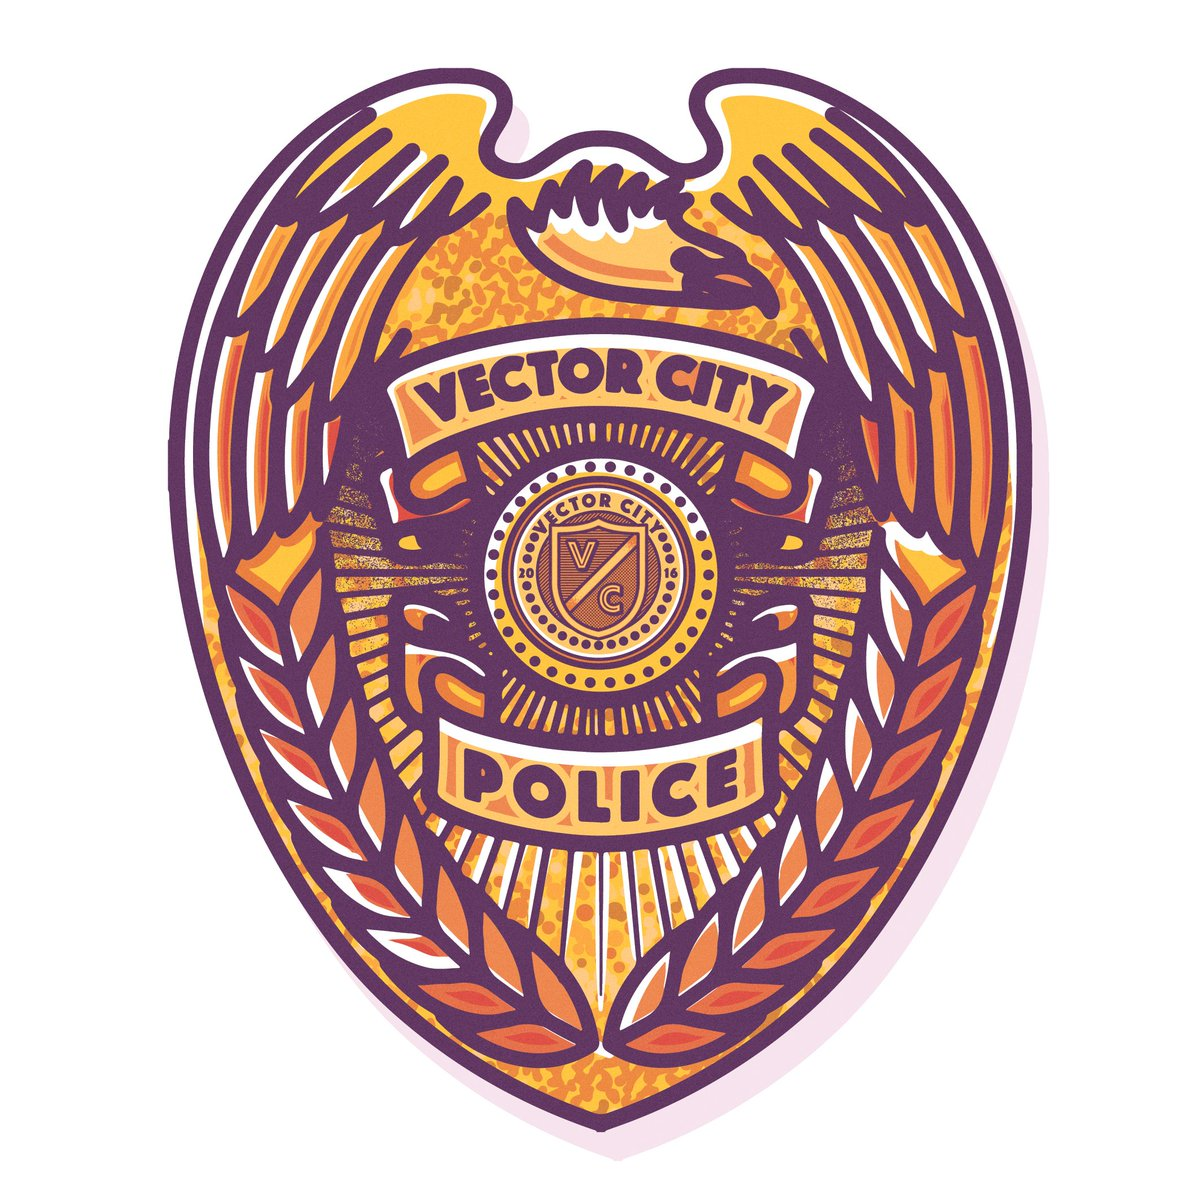 Musketon On Twitter Vector City Police Badge Vector City Is By